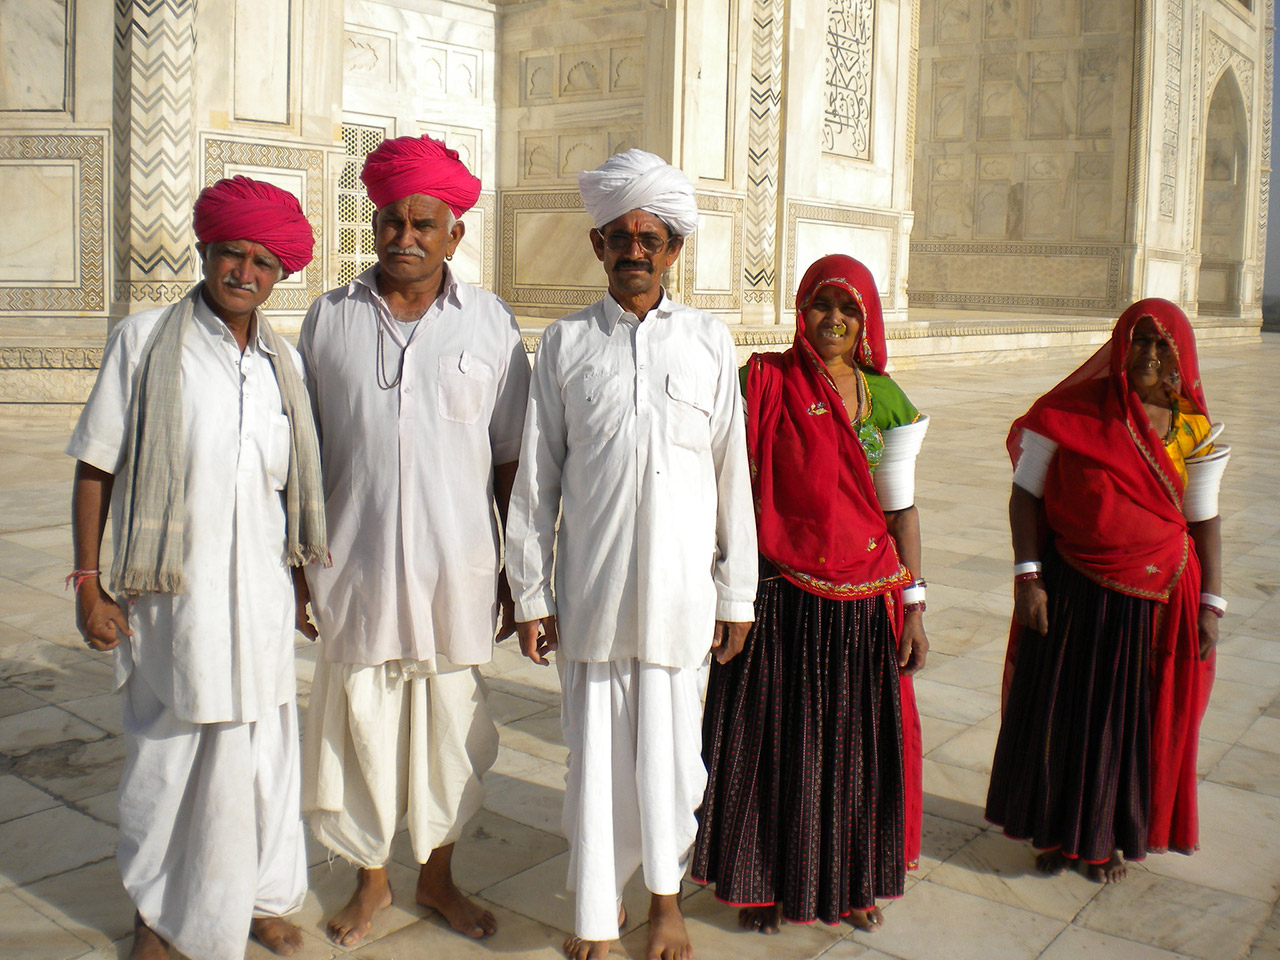 Traditional-Dress-of-Rajasthani-People